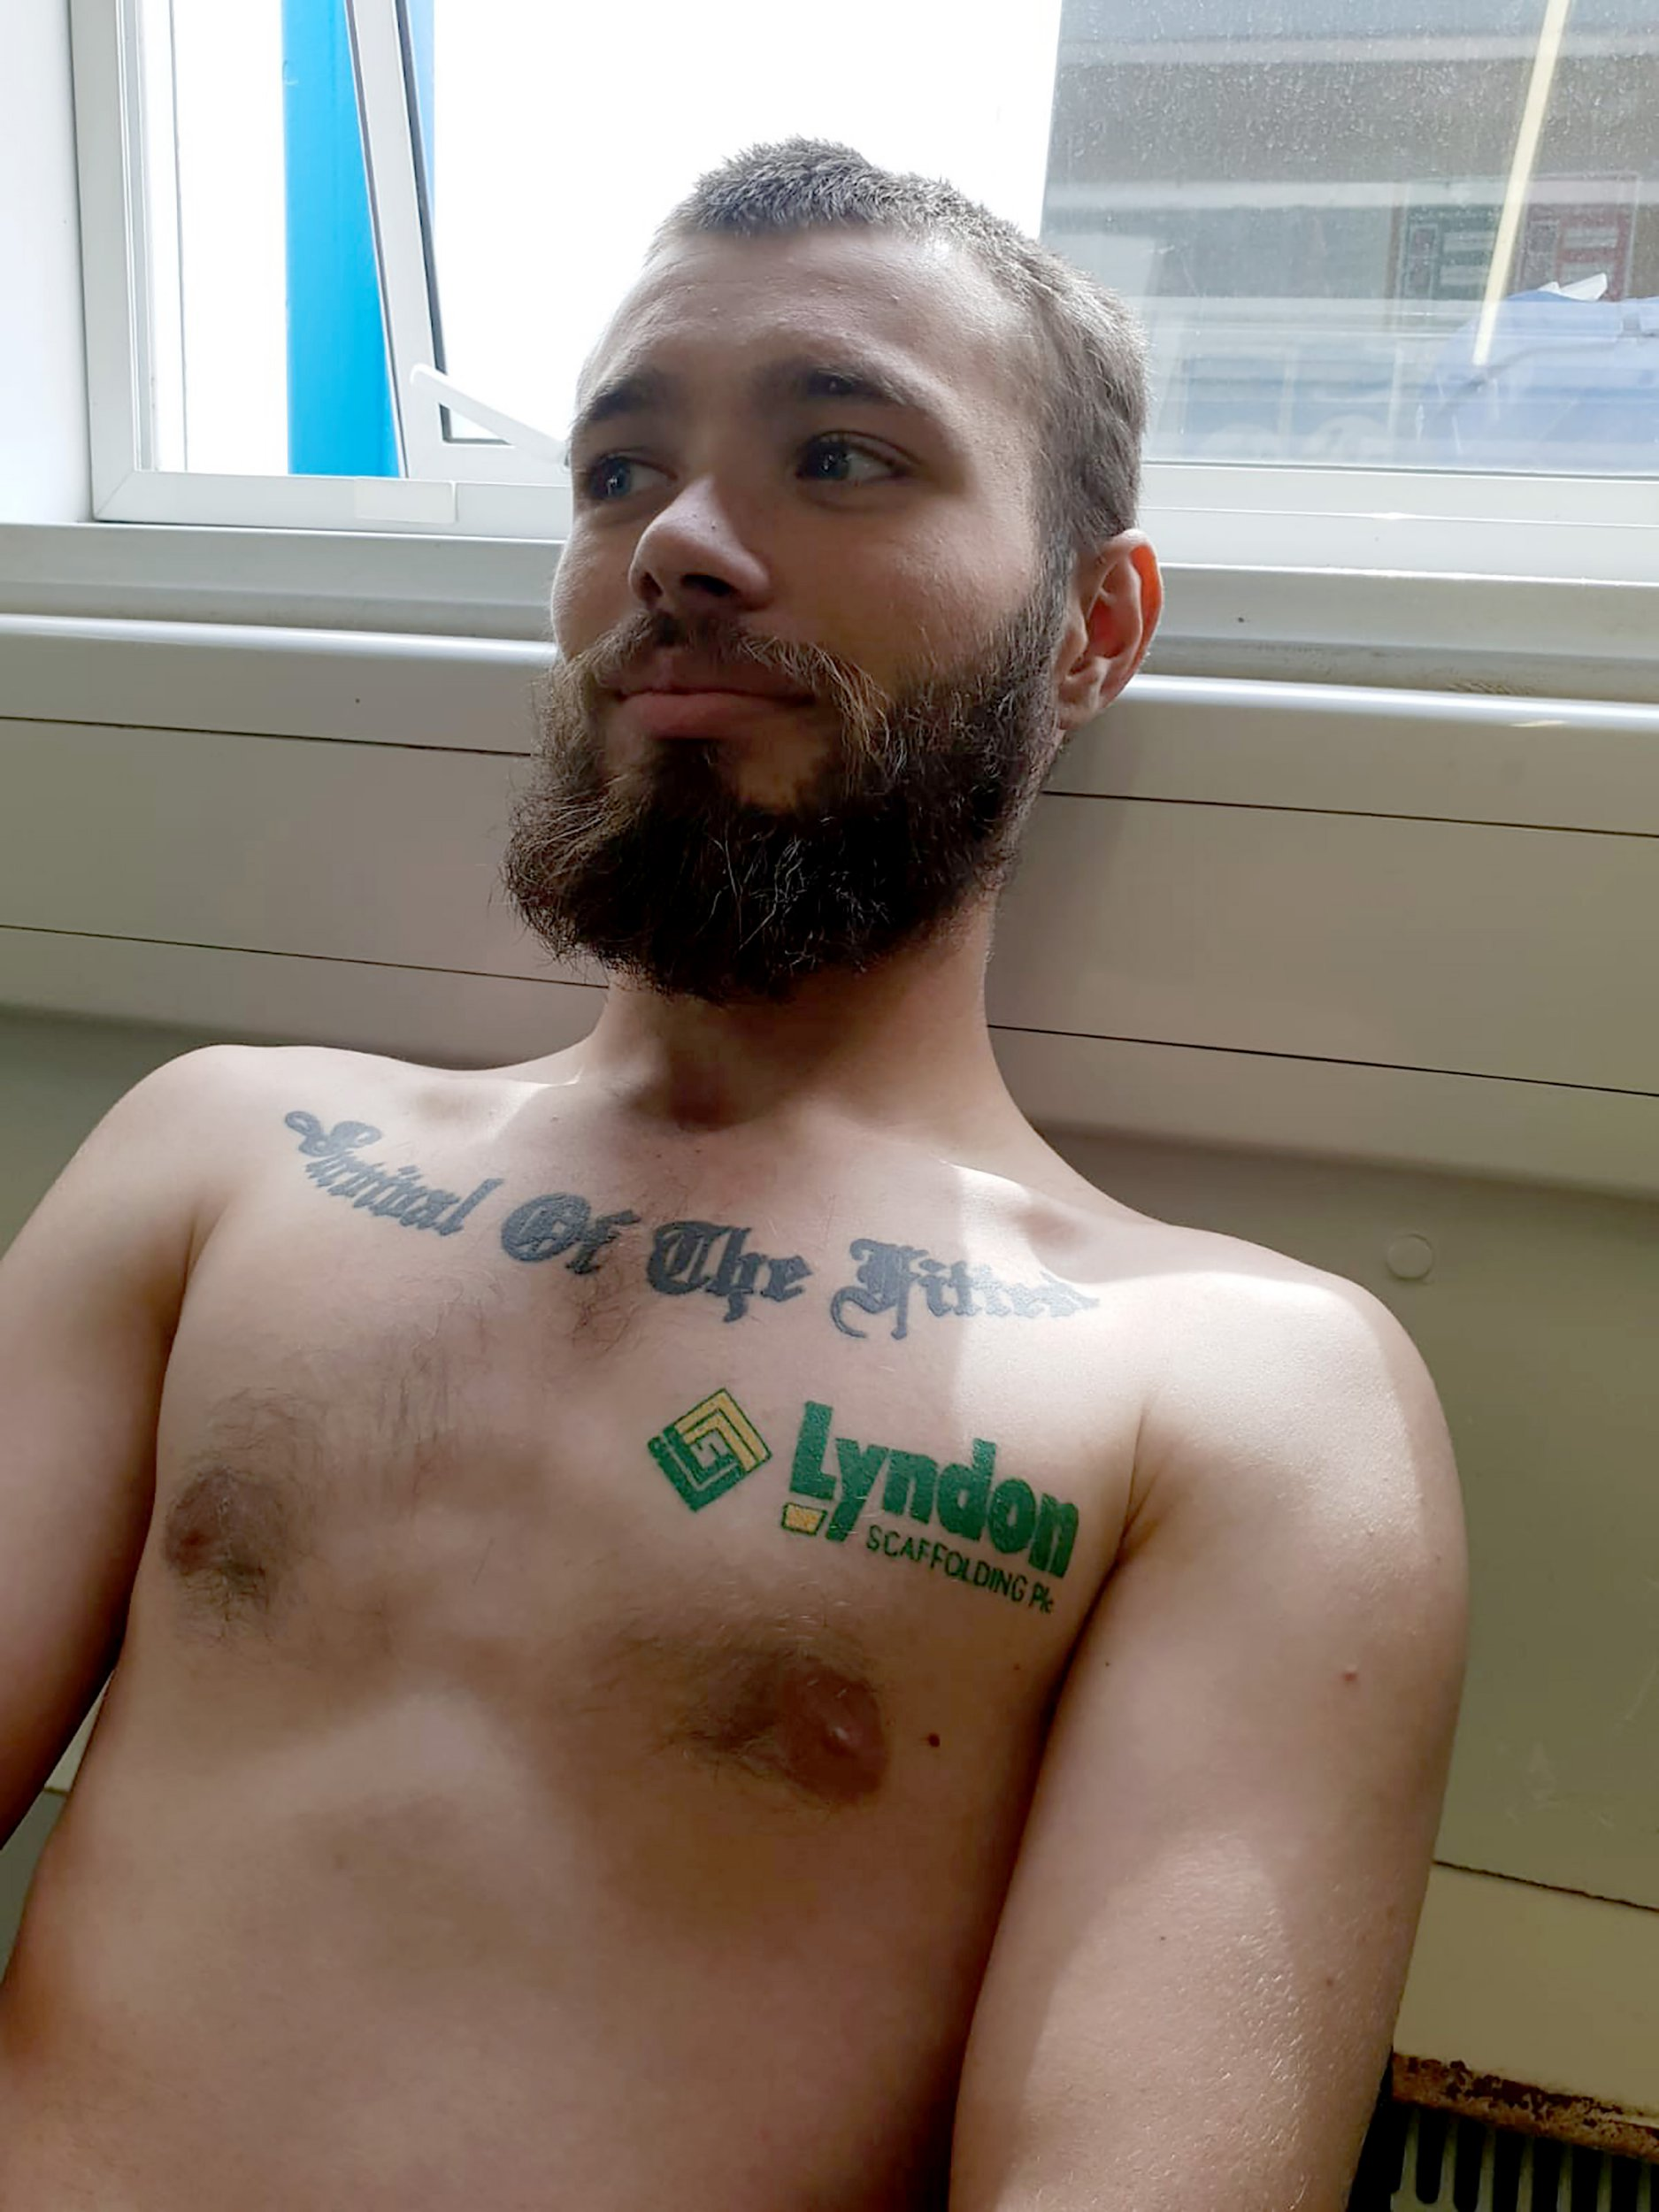 PIC BY FORTITUDE PRESS (PICTURED: SCAFFOLDER STEVEN PARKIN, 24 SHOWS OFF HIS LYNDON SCAFFOLDING TATTOO AFTER BEING DARED TO GET IT DONE BY WORK COLLEAGUES.) A scaffolder got a tattoo of his employer???s company logo, after work colleagues dared him to get the design and offered to pay for the bizarre inking. Steven Parkin, who has been working for Lyndon Scaffolding PLC for three years, got the tattoo last month after telling friends he would get anything they wanted as long as they paid for it. Even though the 24-year-old said he ???wasn???t that bothered??? about the chosen design, he says he now regrets having the tattoo done and admits he might get it covered up when he ???gets fired??? from his job. SEE FORTITUDE COPY